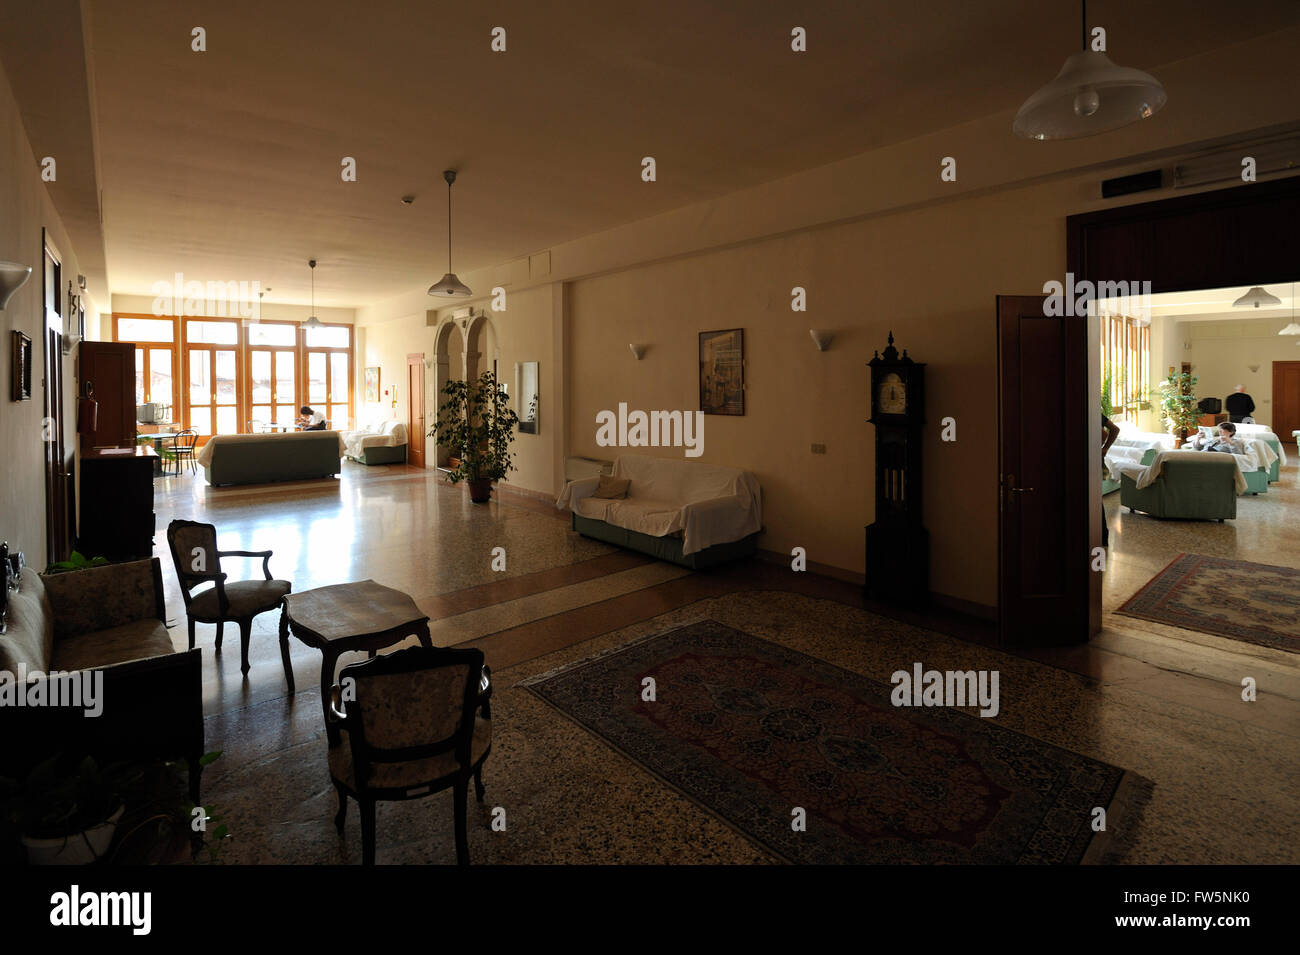 Vivaldi orphanage hallway: the Ospedale della Piet'/ 'hospital' / orphanage at which Venetian composer - Stock Image